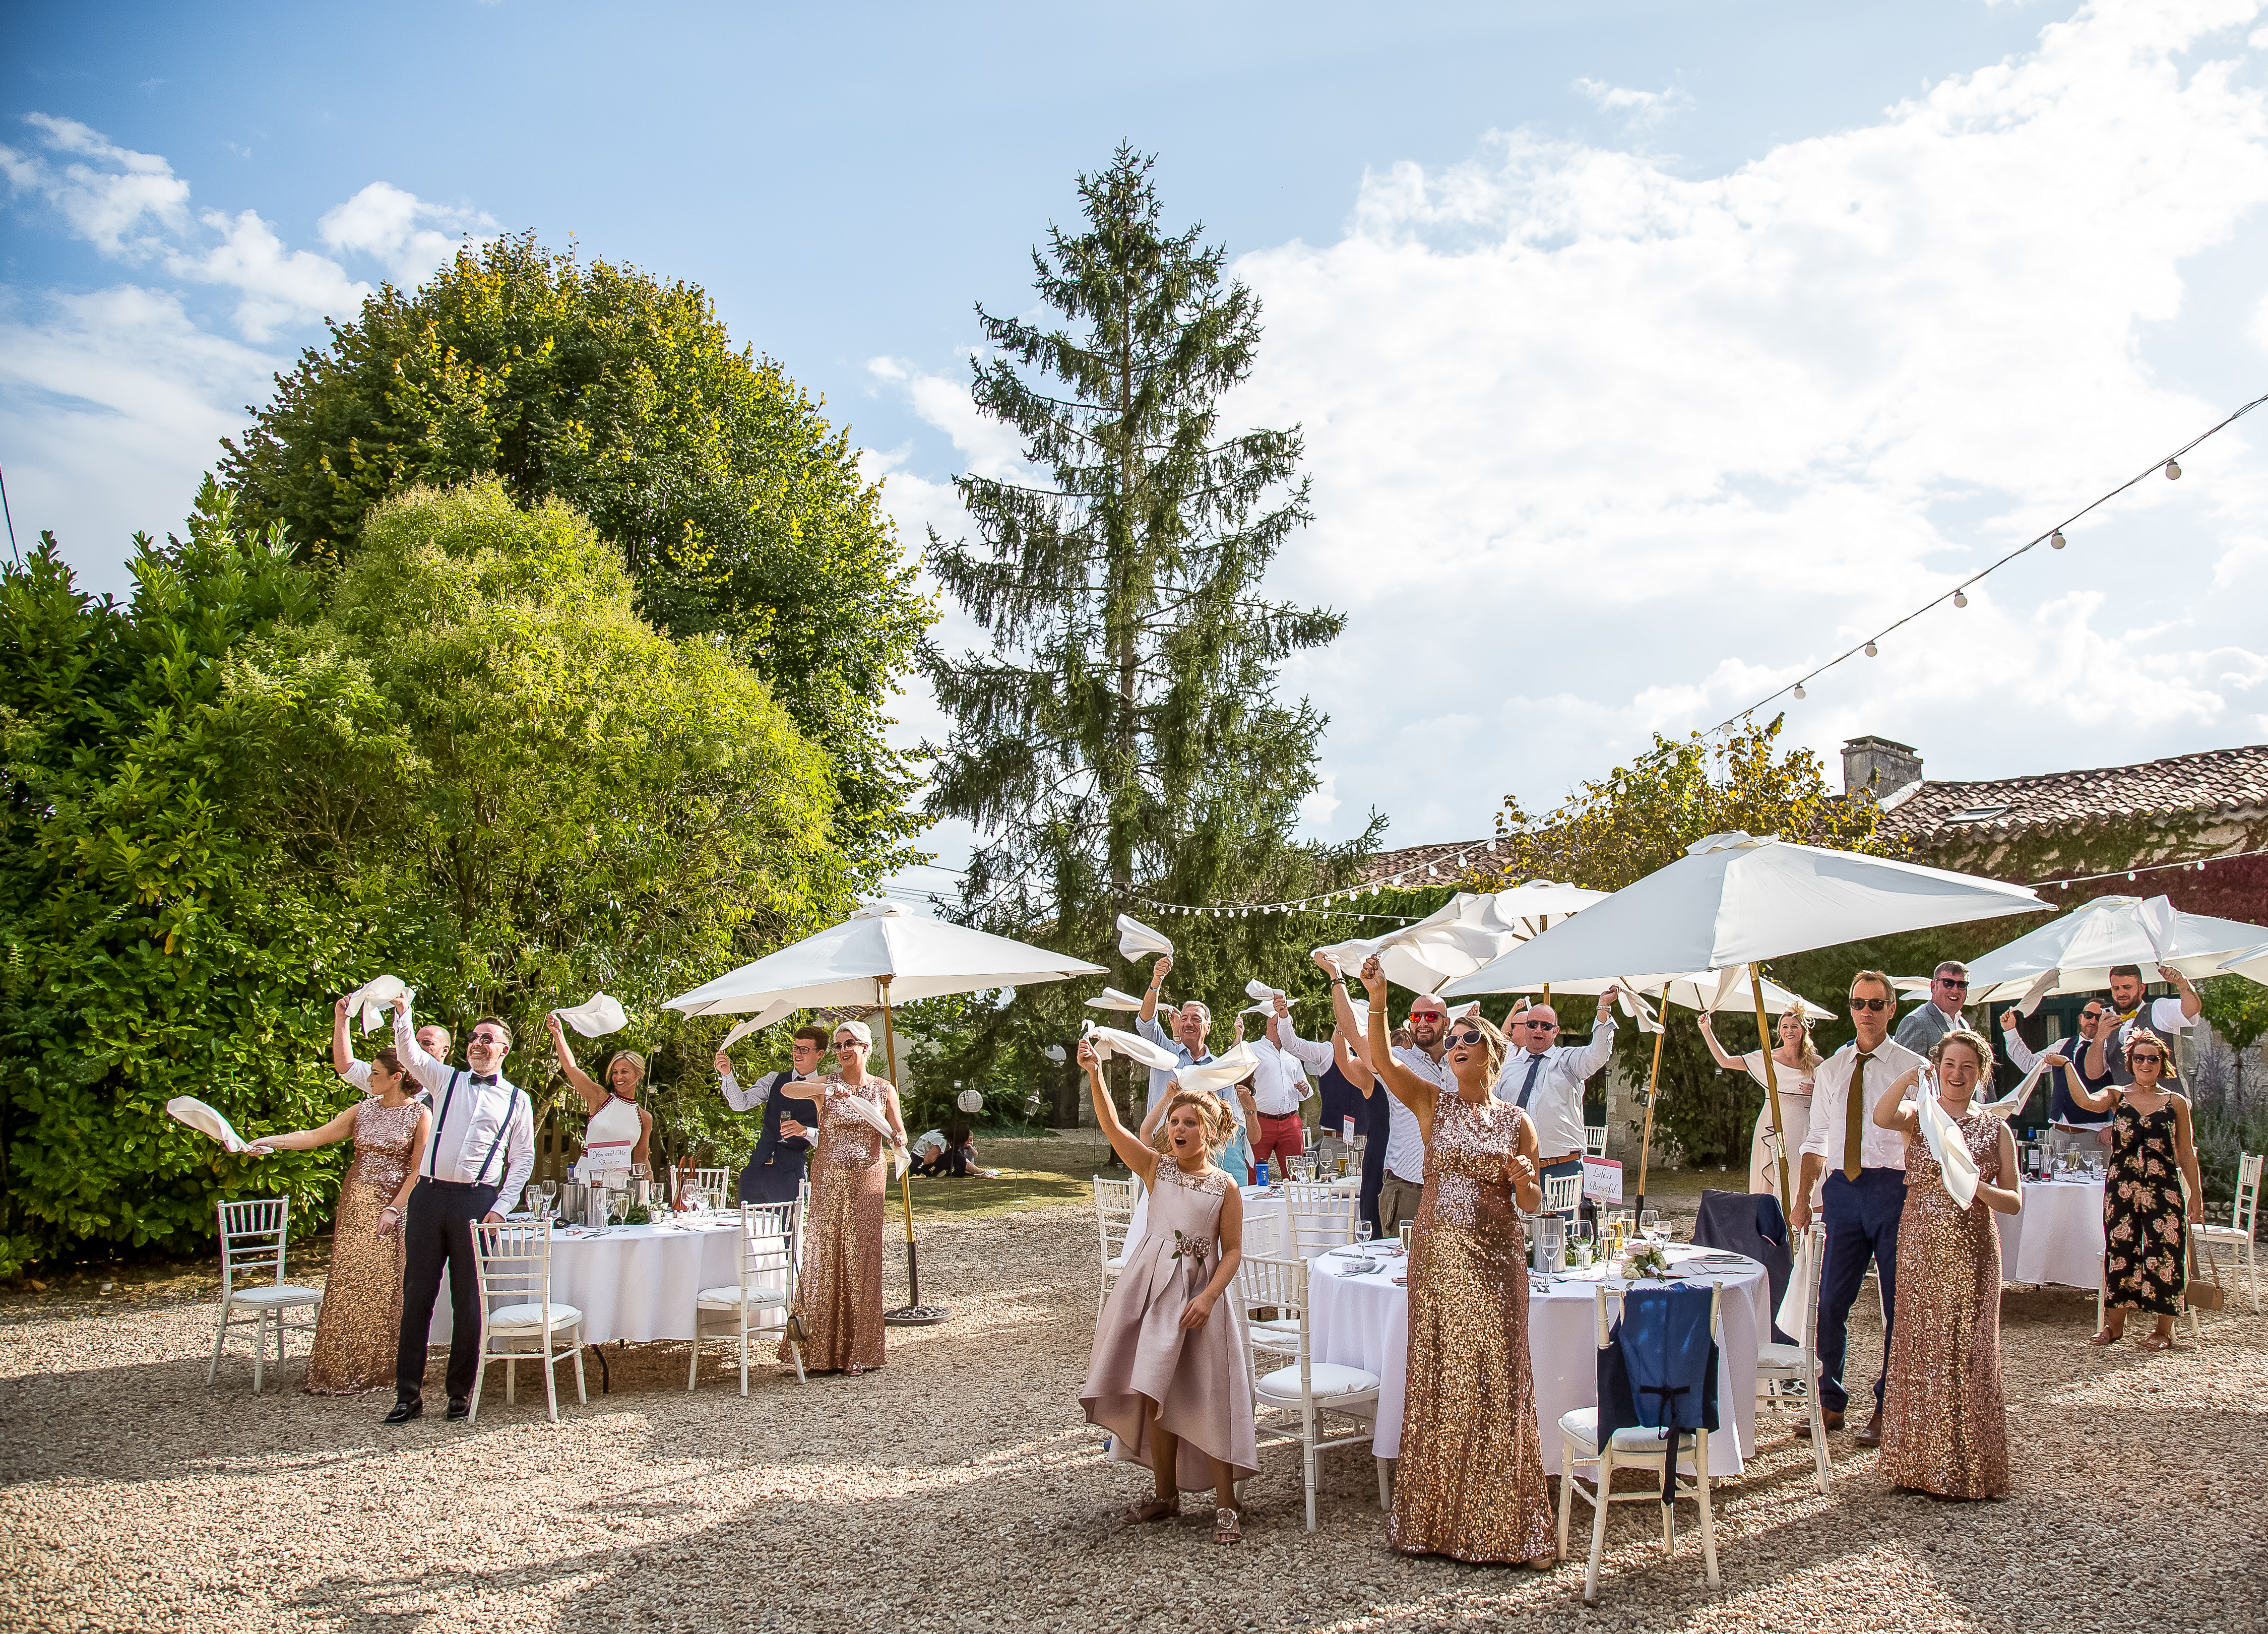 guests at wedding in dordogne